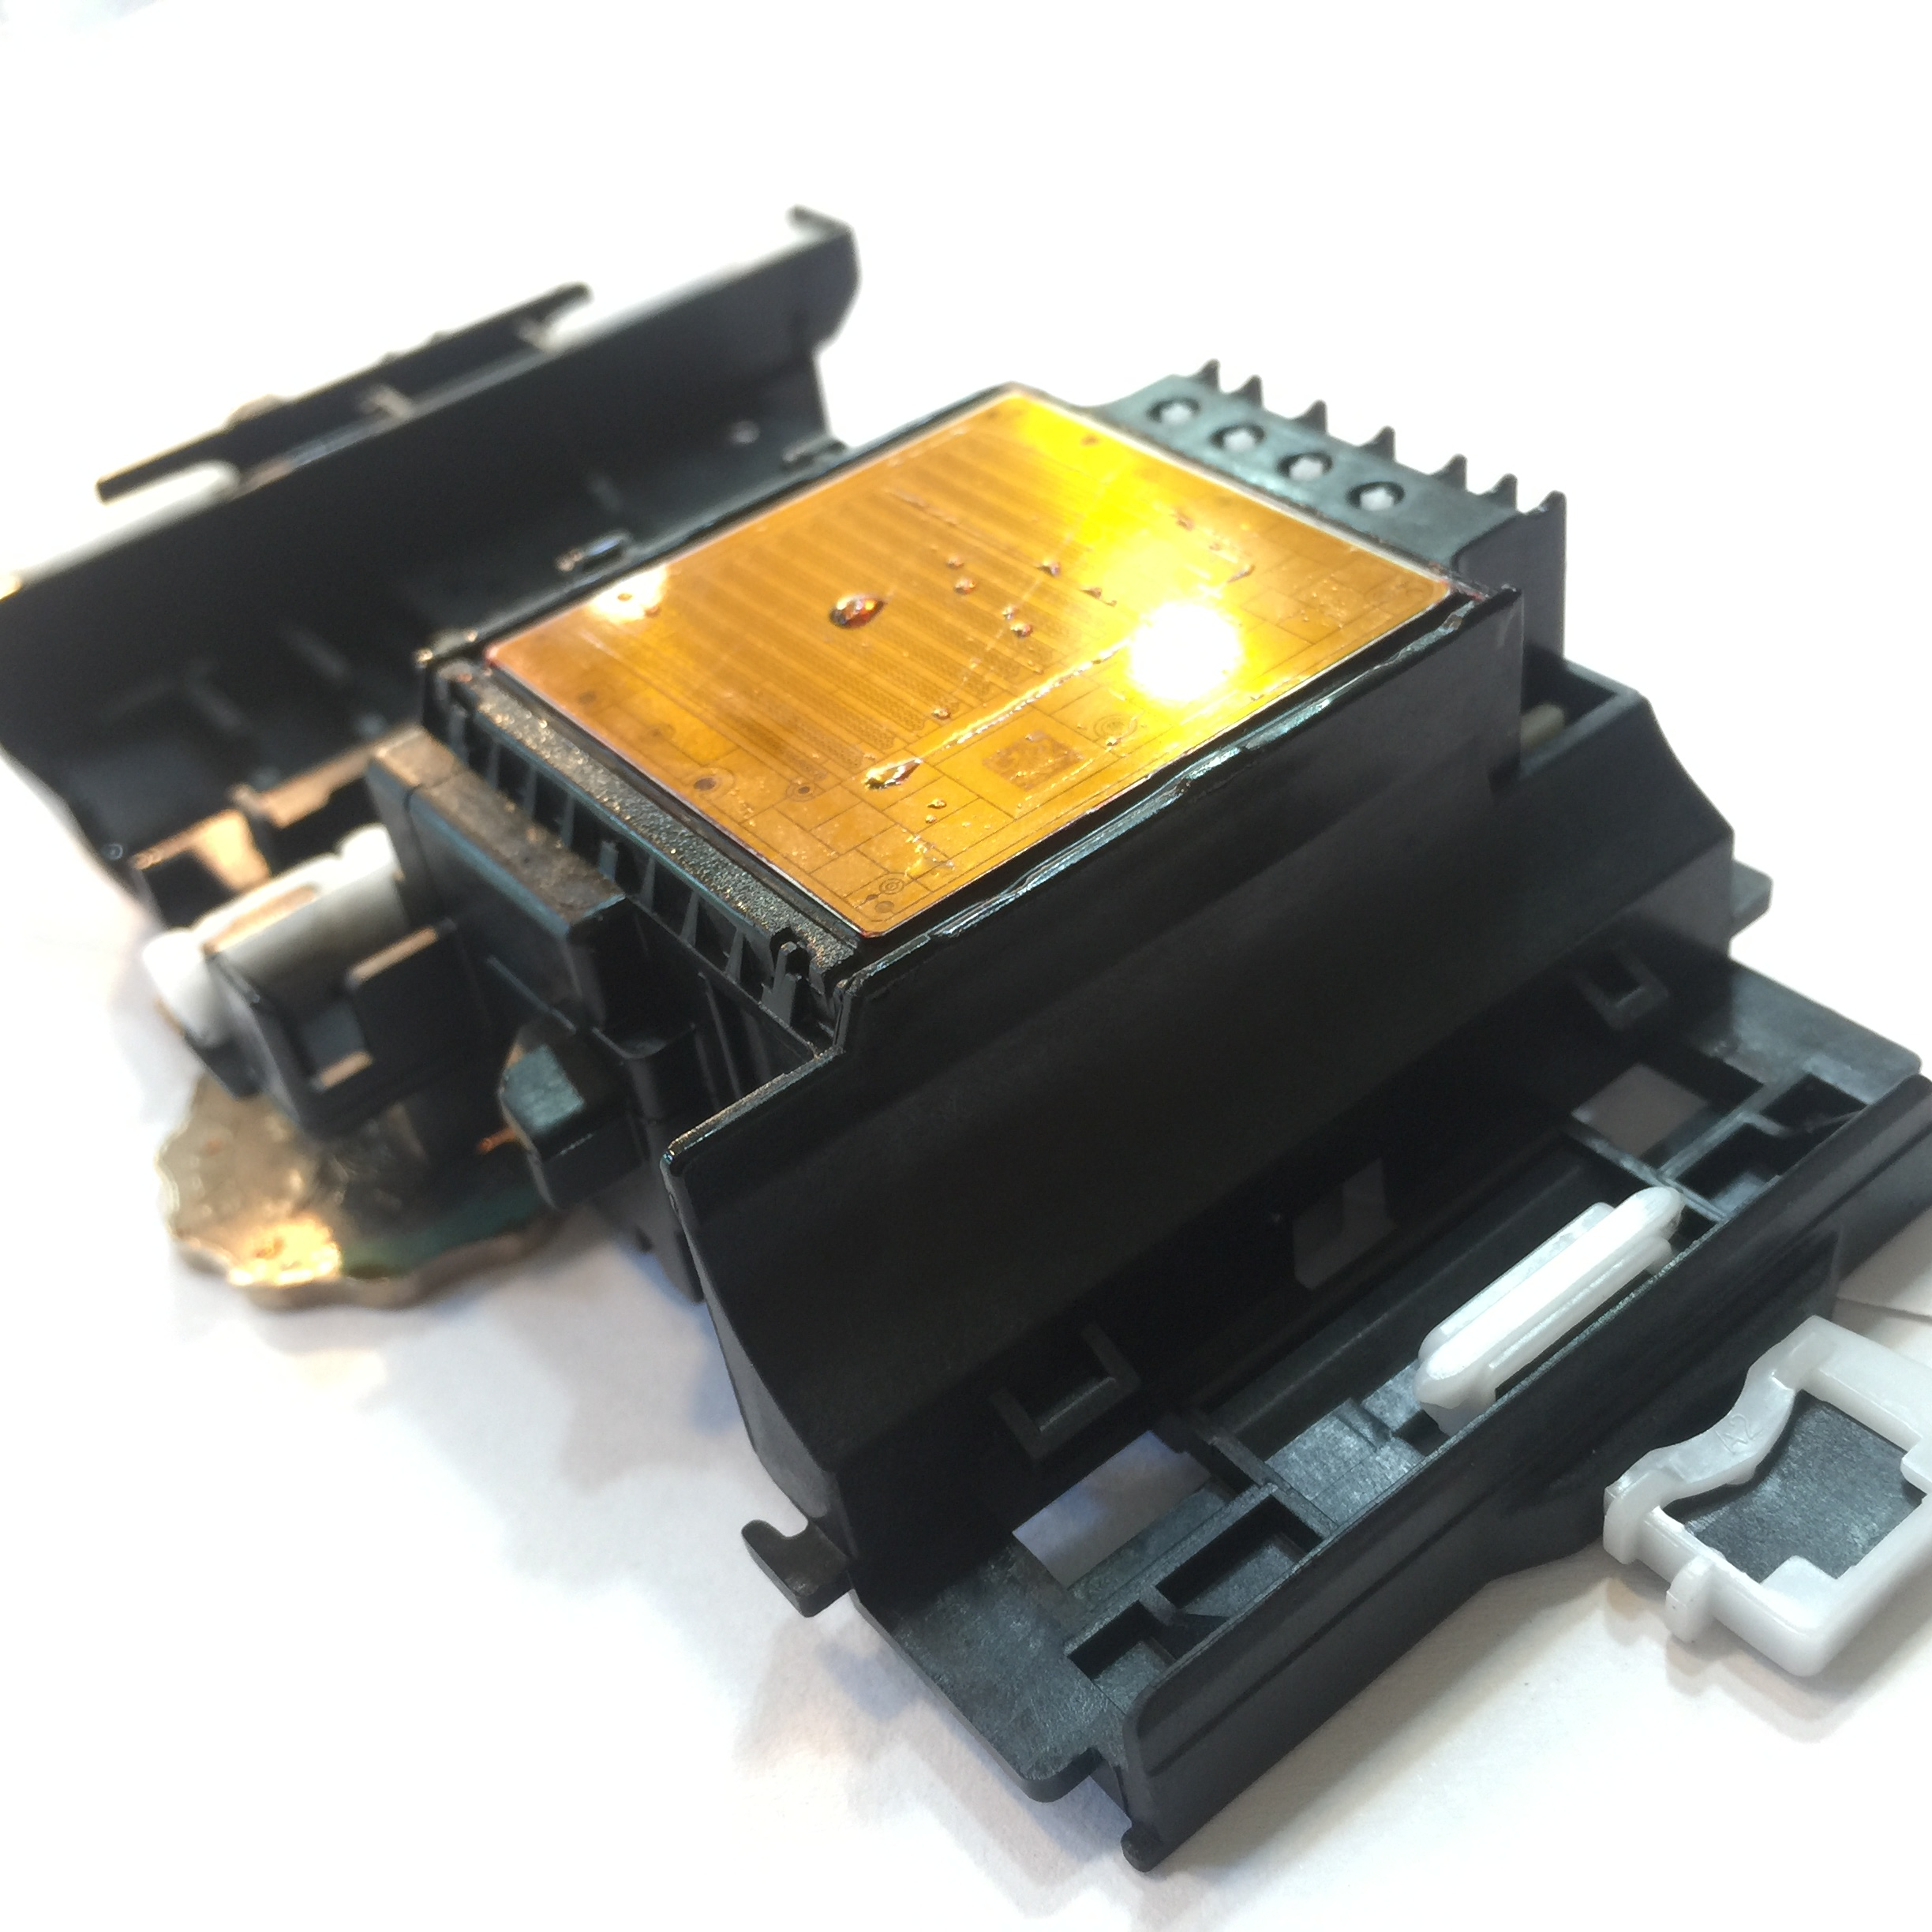 ORIGINAL Printhead For Brother MFC J245 J285 J450 J470 J475 J650 J870 J875 J450DW J470DW J475DW J650DW J870DW J875DW